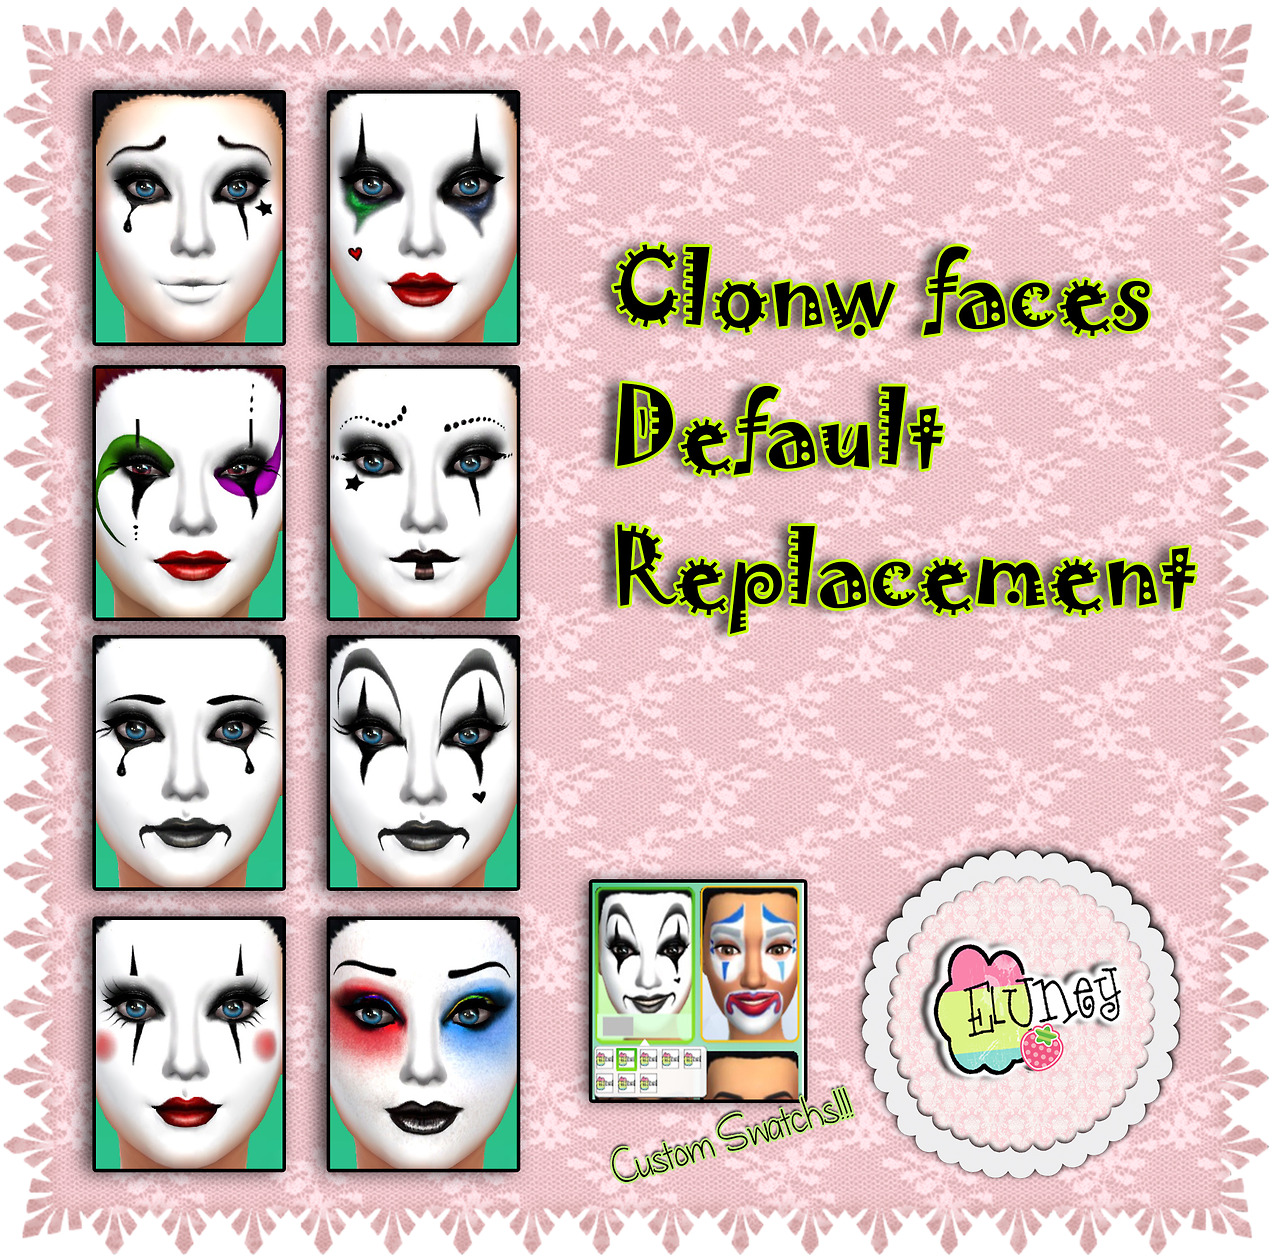 Default Replacement Clown Faces by EluneyDesign